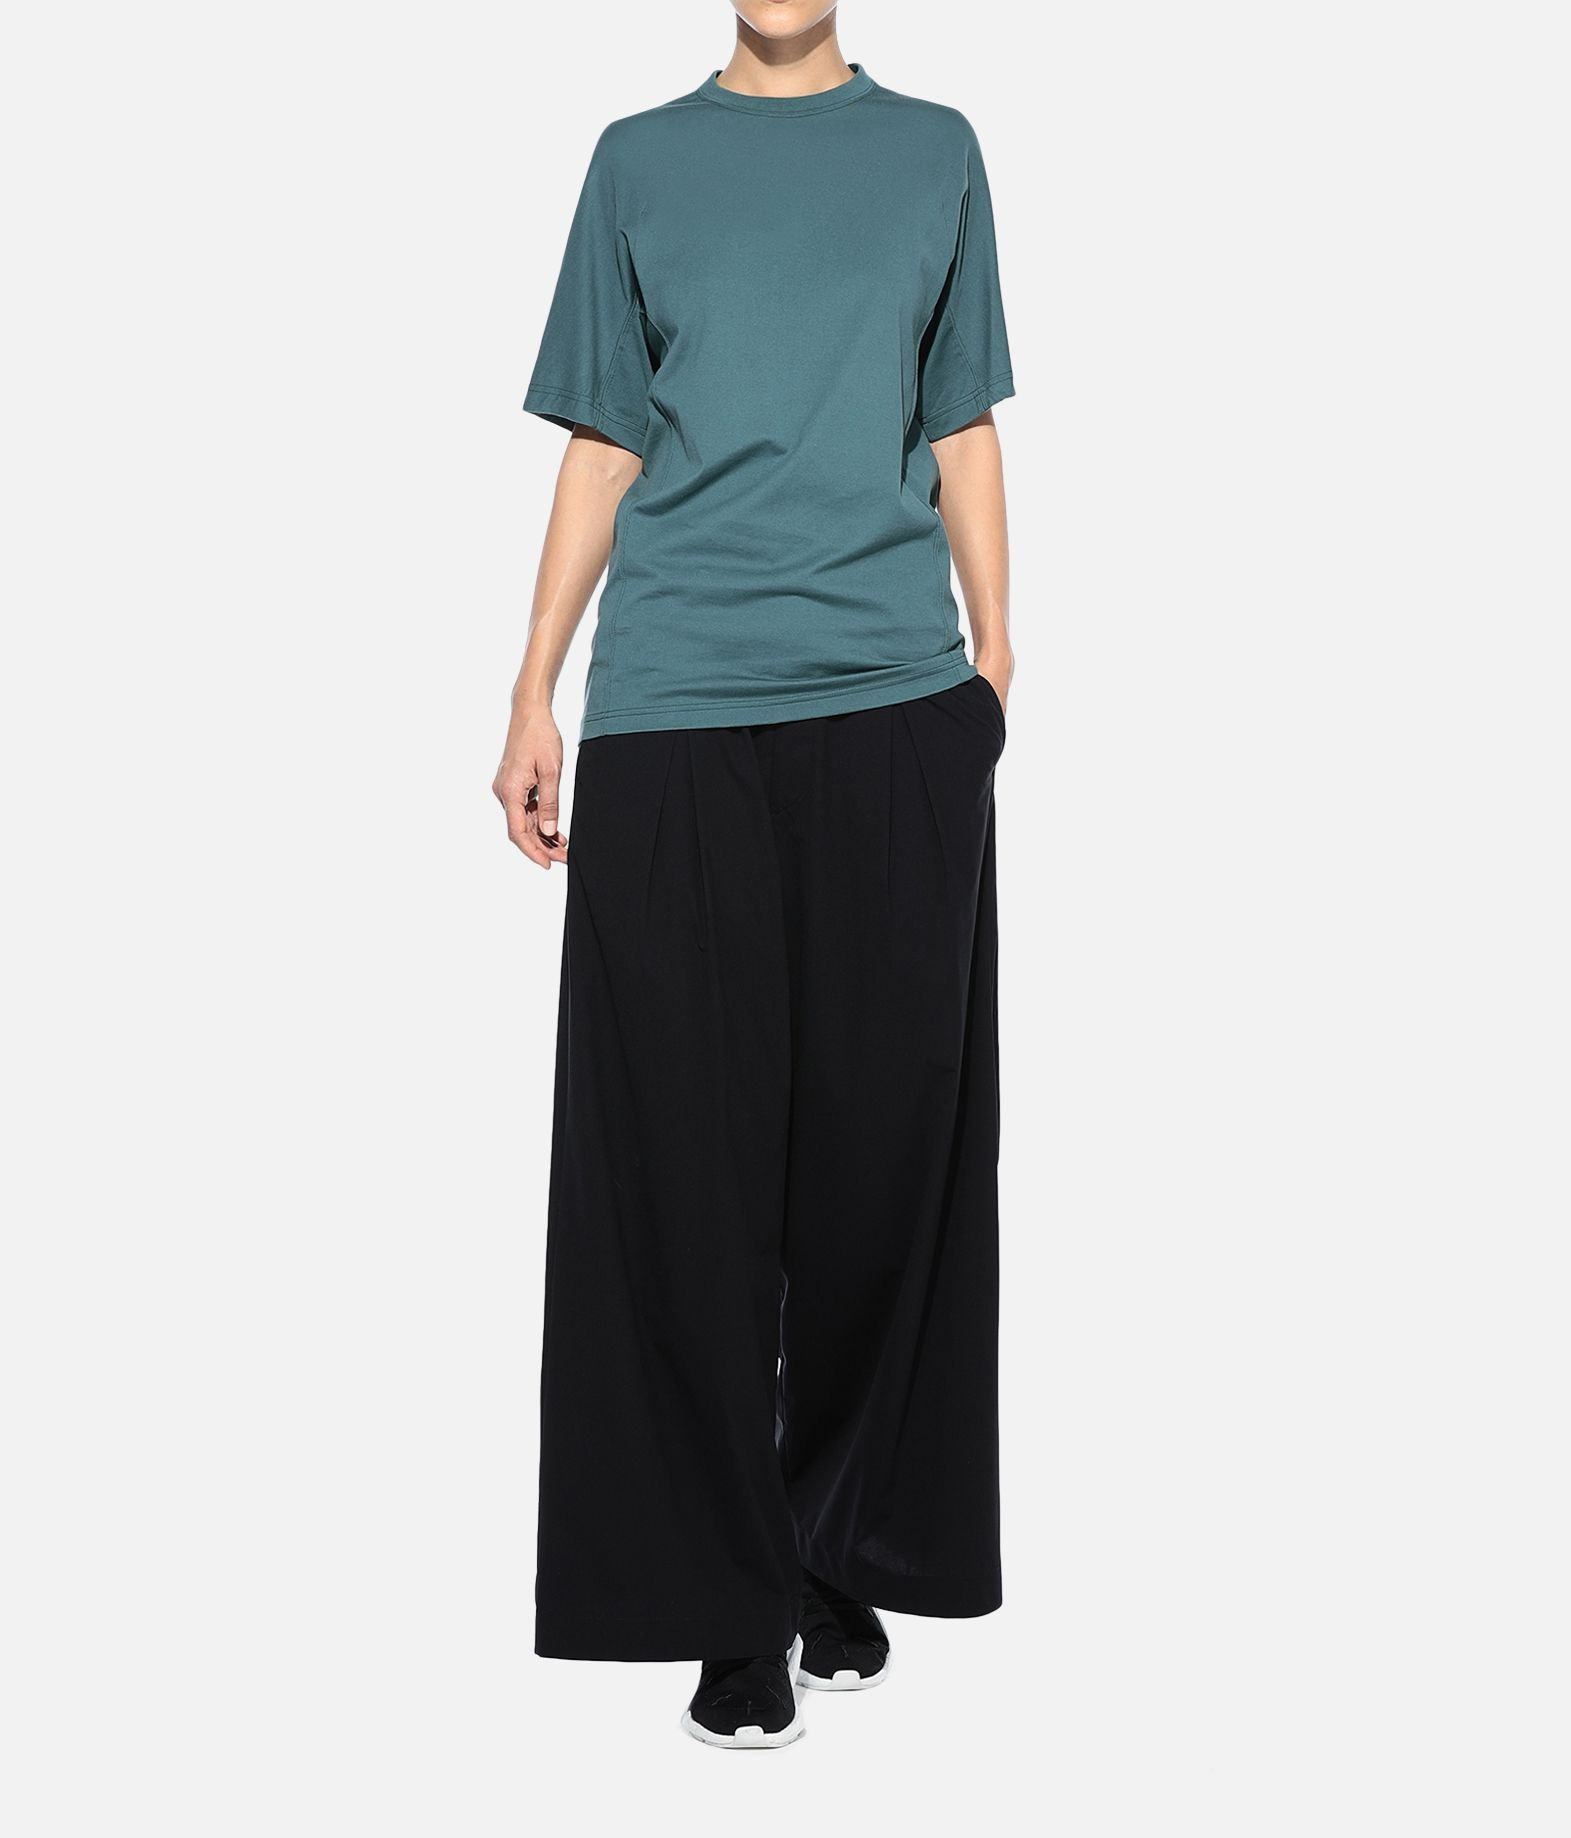 Y-3 Y-3 New Classic Tee  Short sleeve t-shirt Woman a